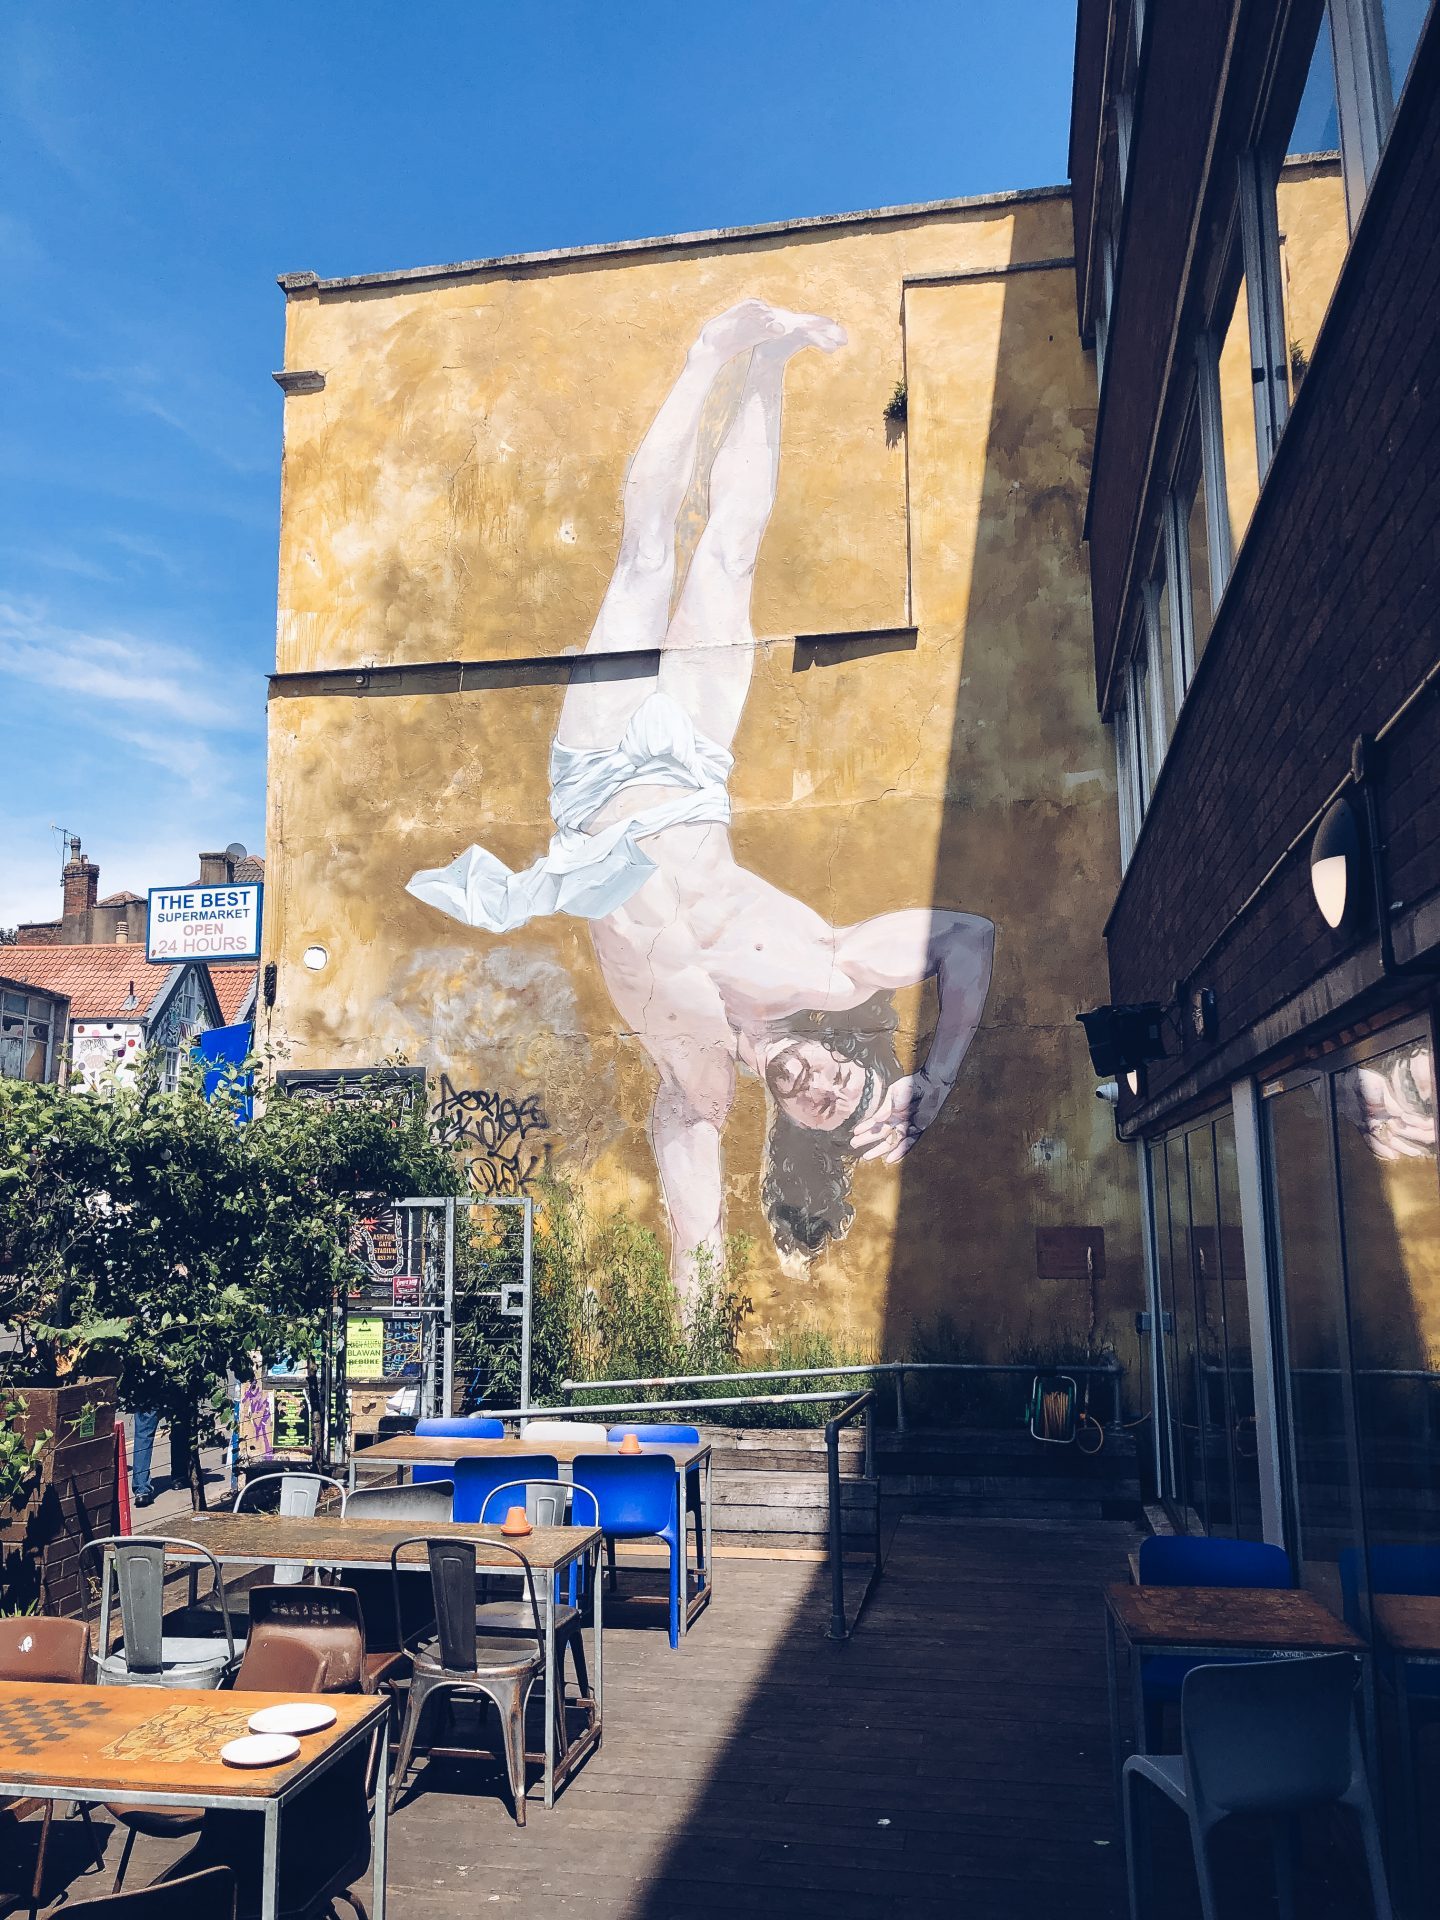 cosmo sarson's breakdancing jesus mural is on a wall in an enclosed outdoor cafe space